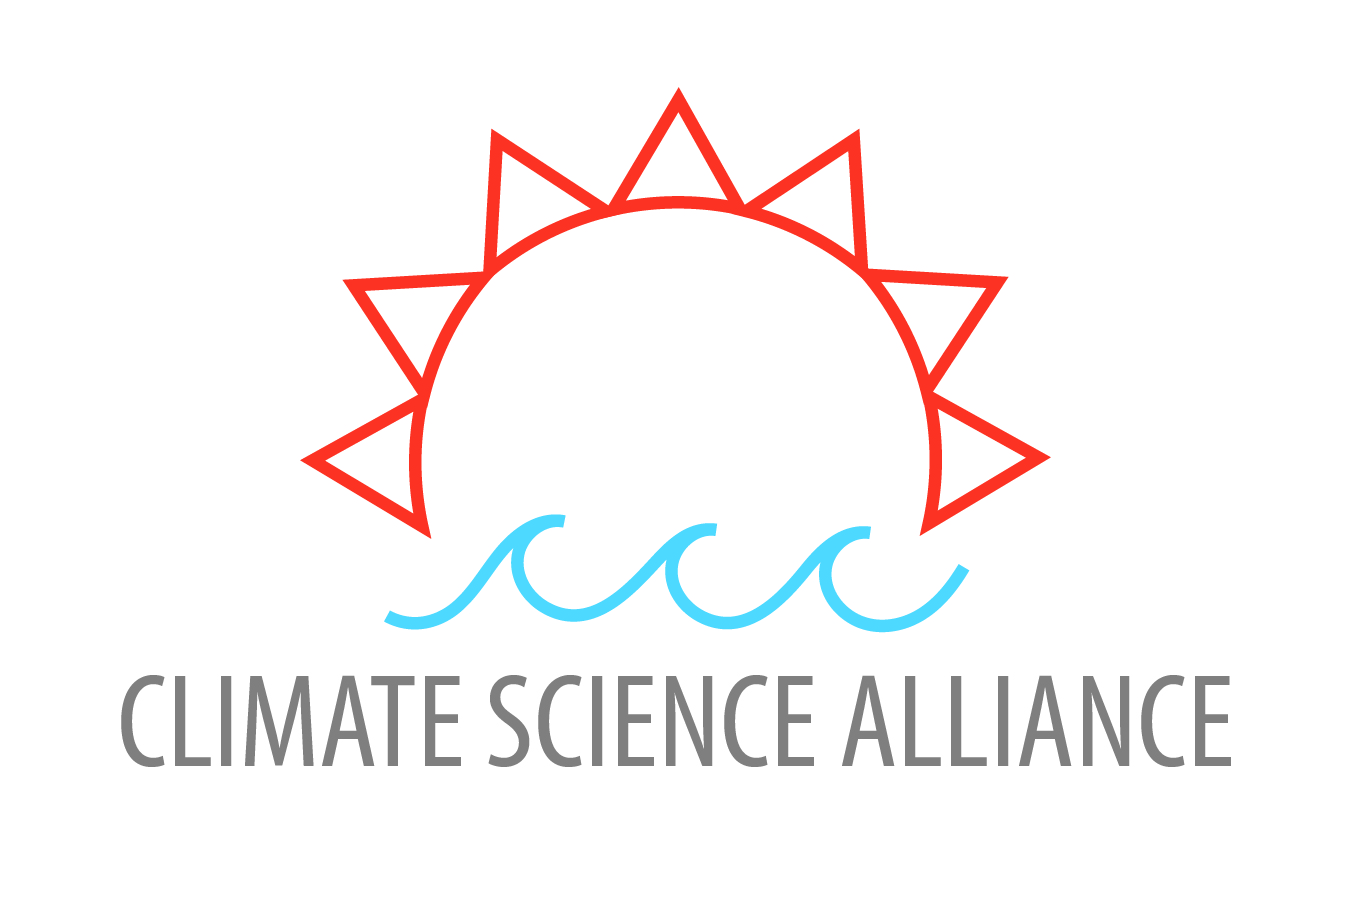 www.climatesciencealliance.org